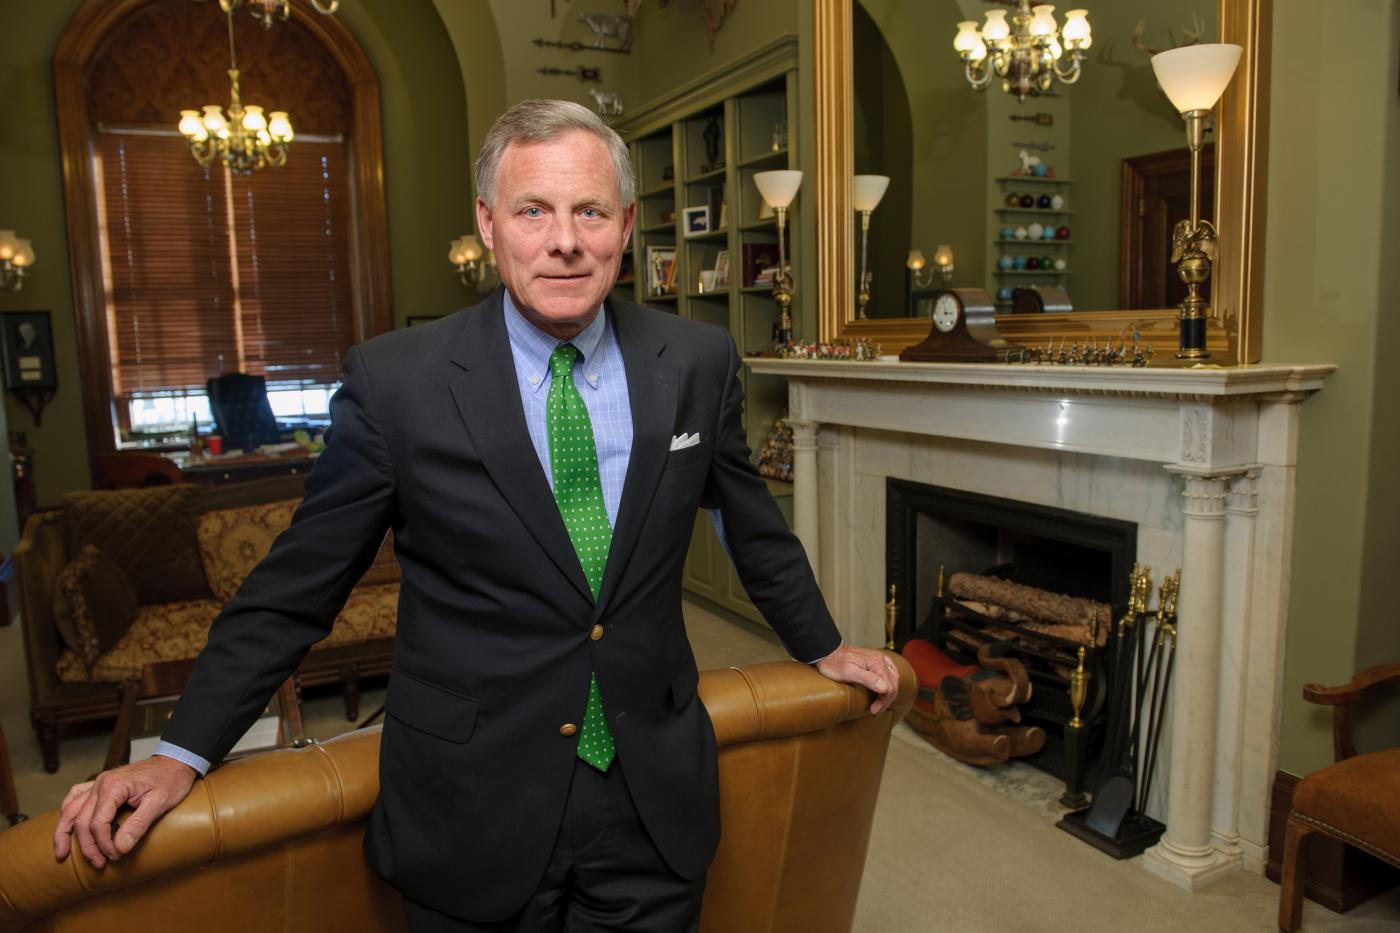 Richard Burr standing in his office wearing a suit with blue shirt and green tie